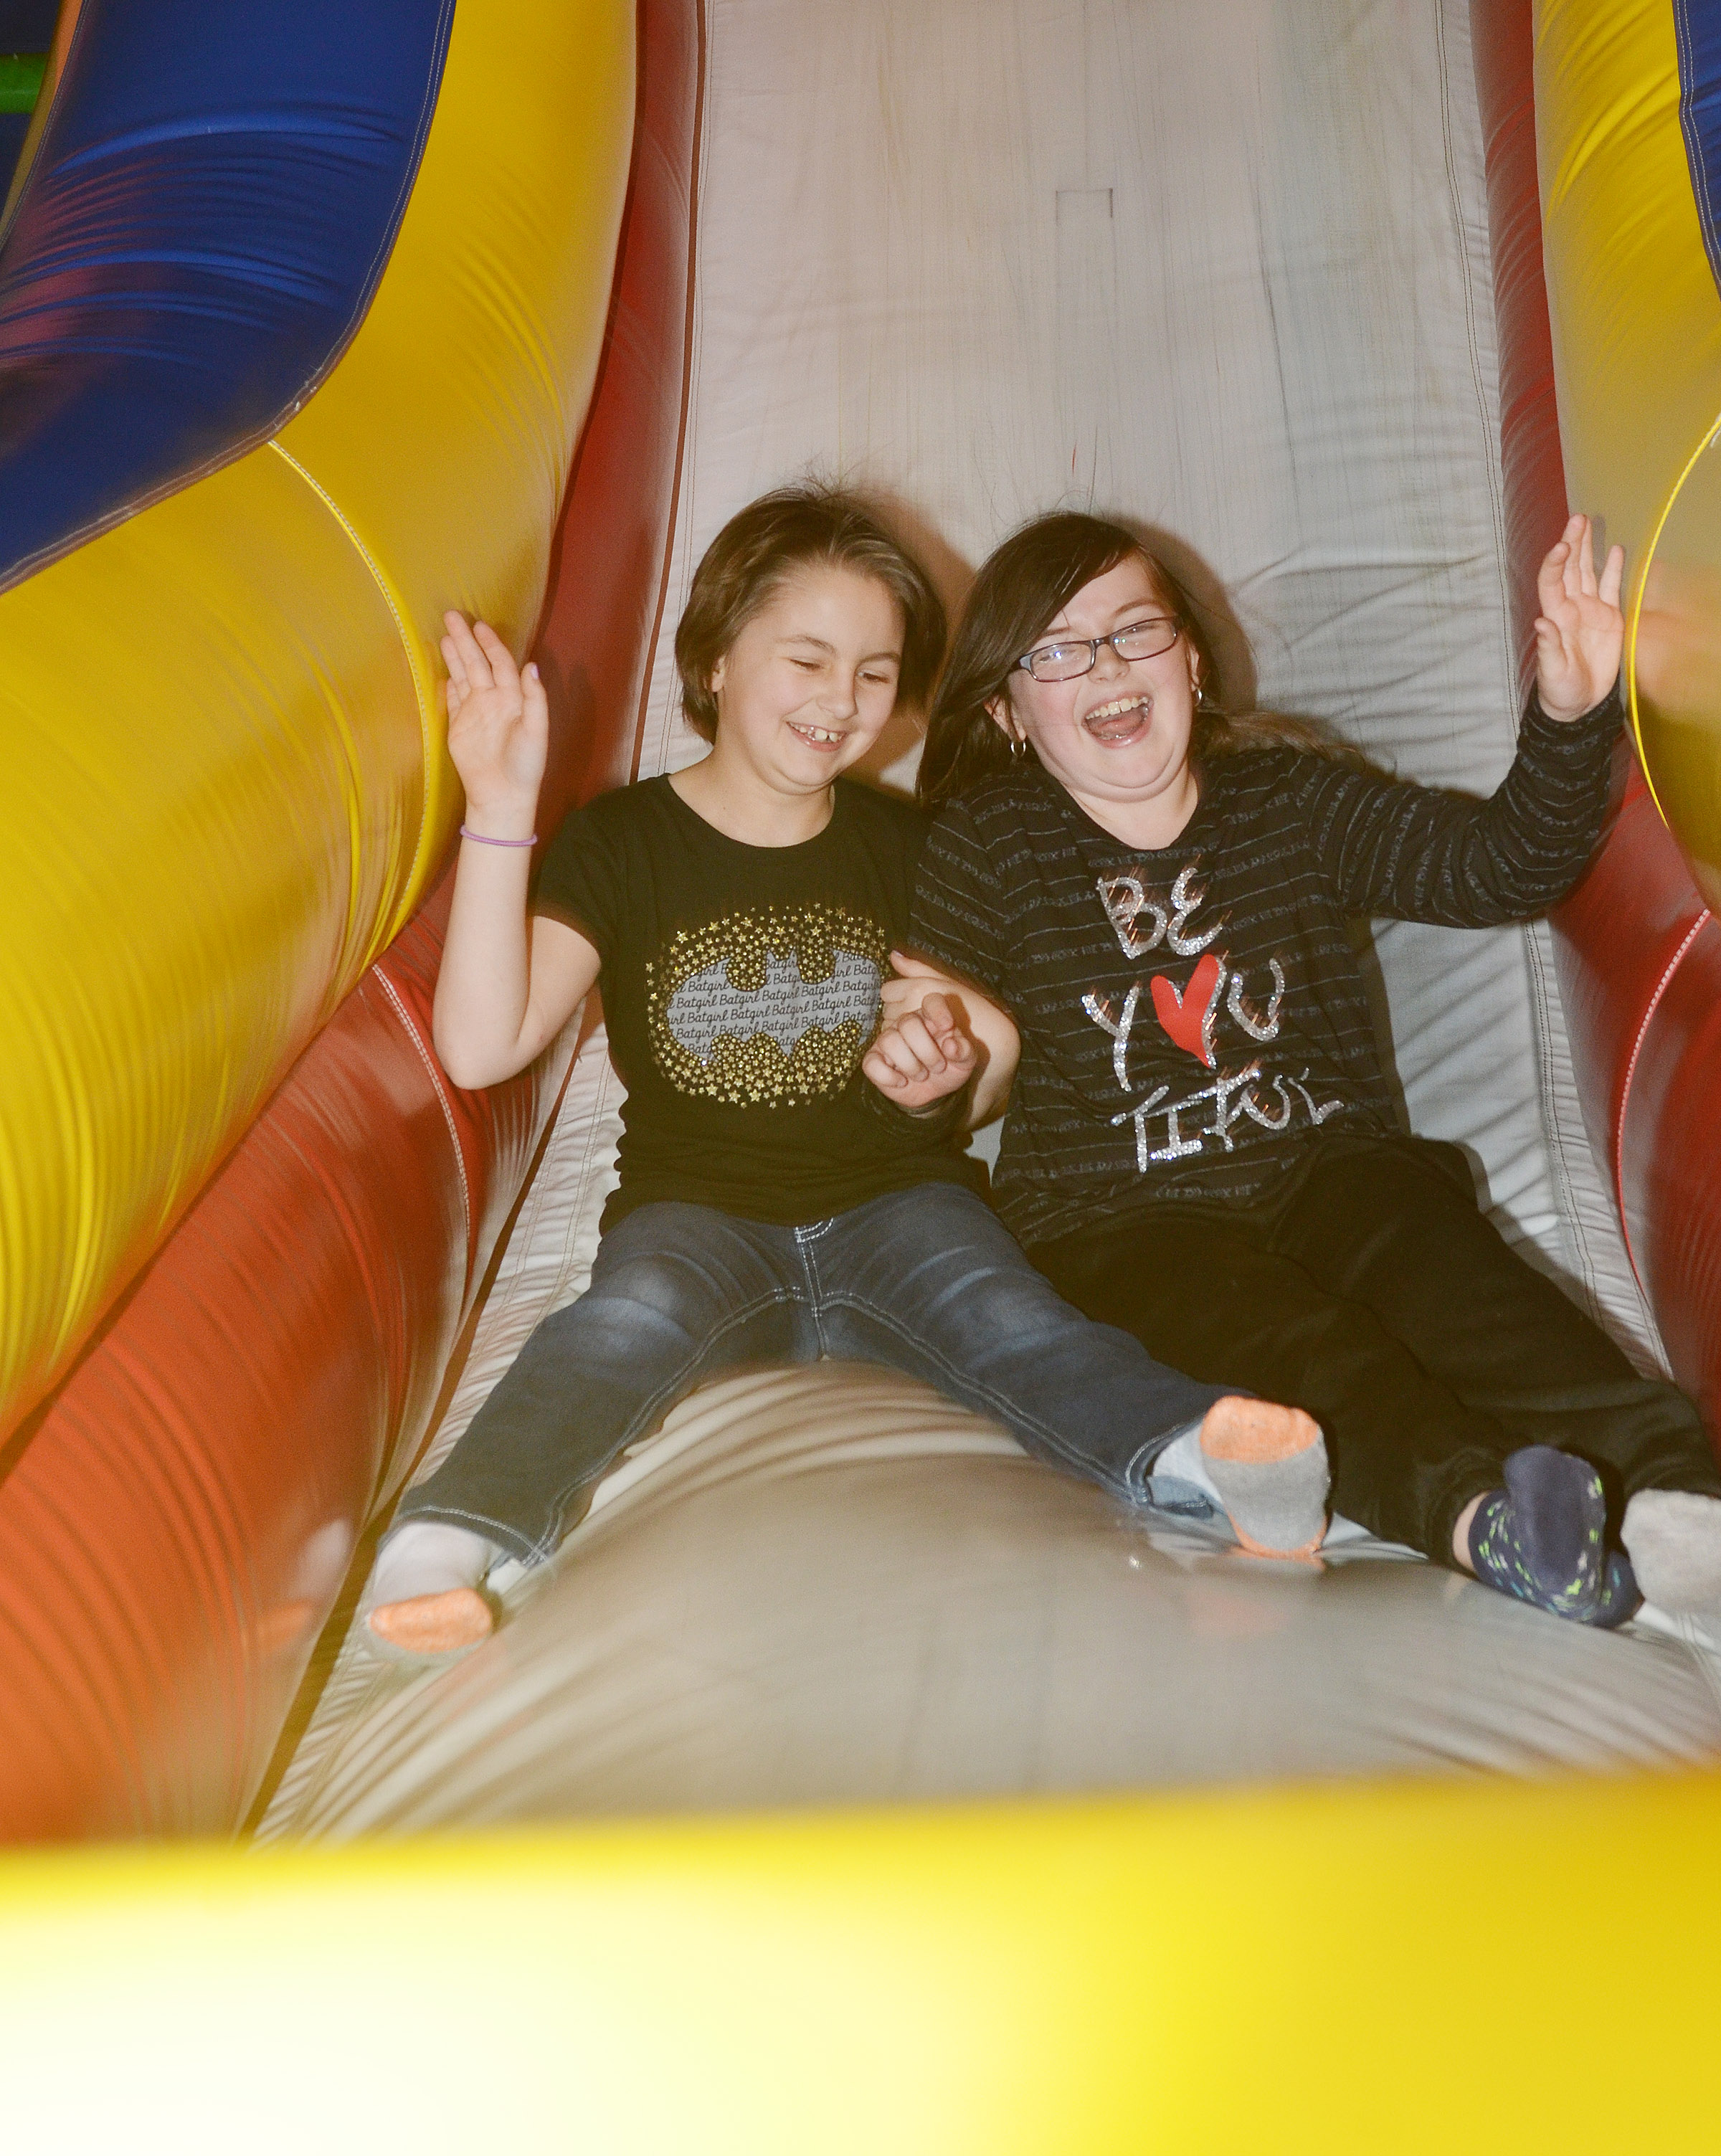 CES fourth-graders Raenna Jefferson, at left, and Lauren Pace slide down an inflatable.